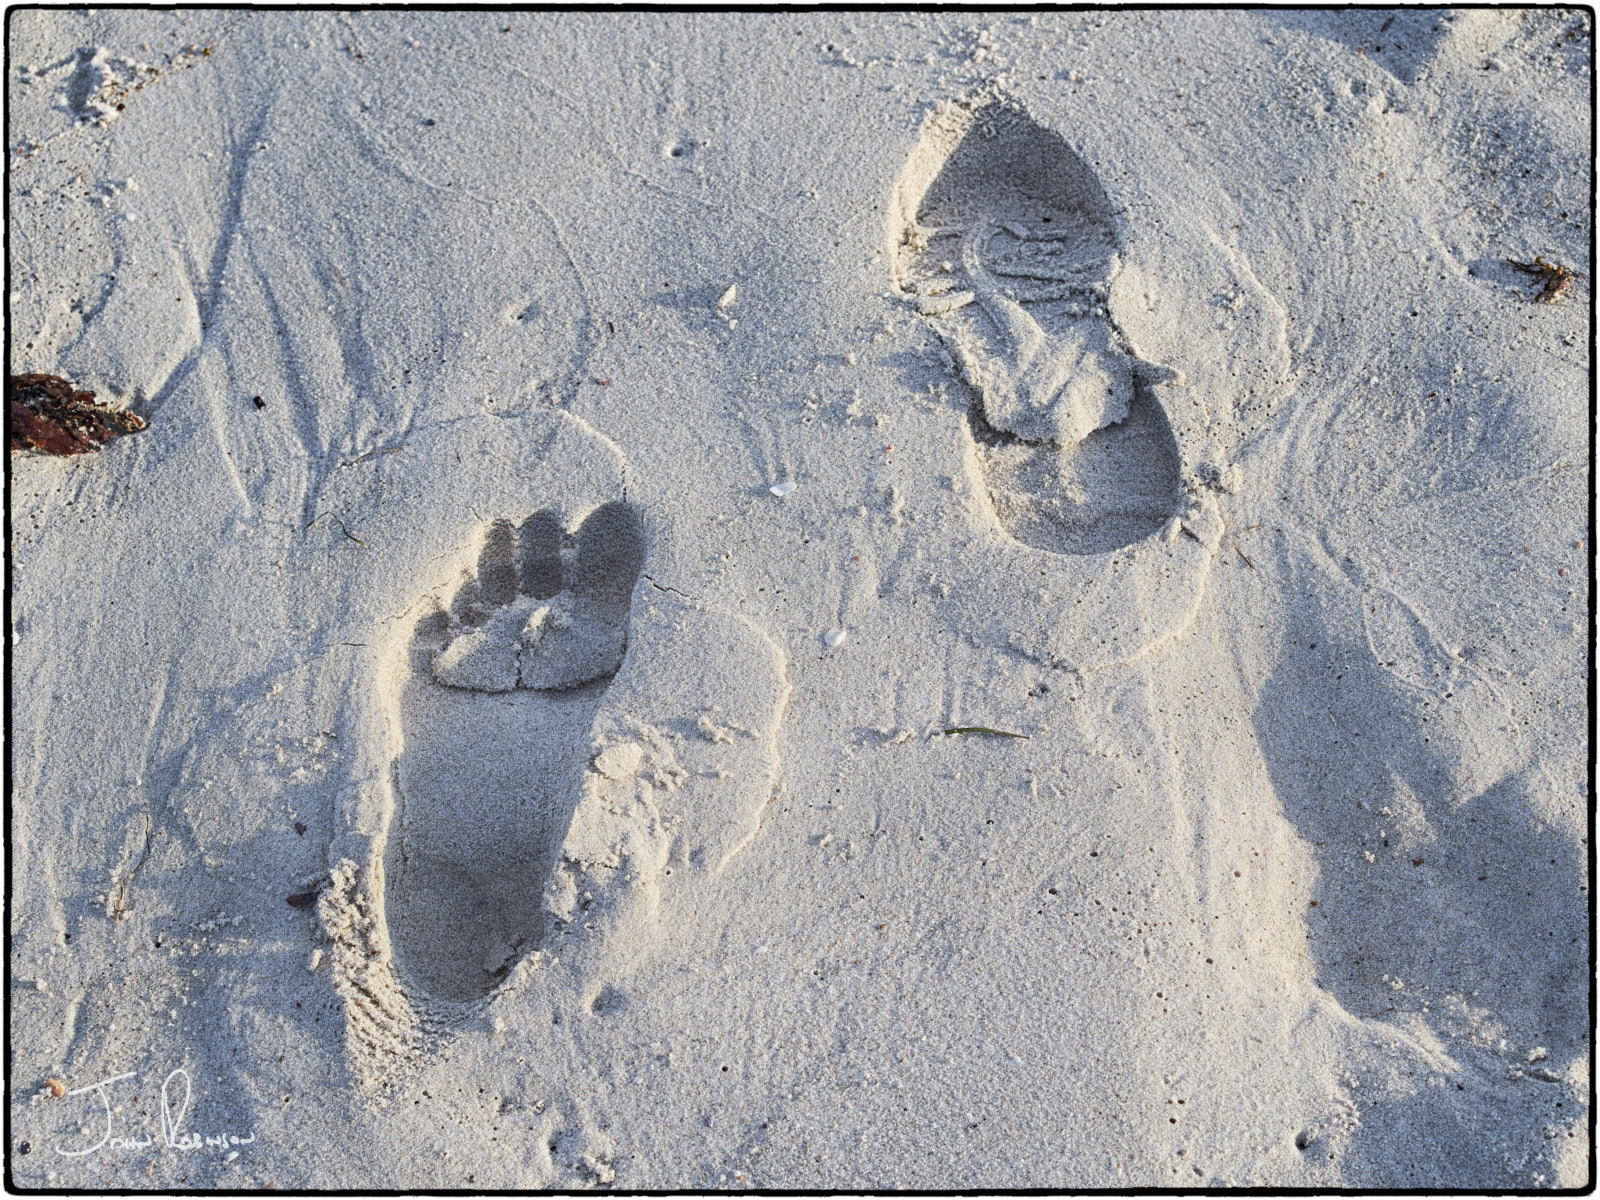 Footprints in the sand, Cottesloe Beach, Western Australia